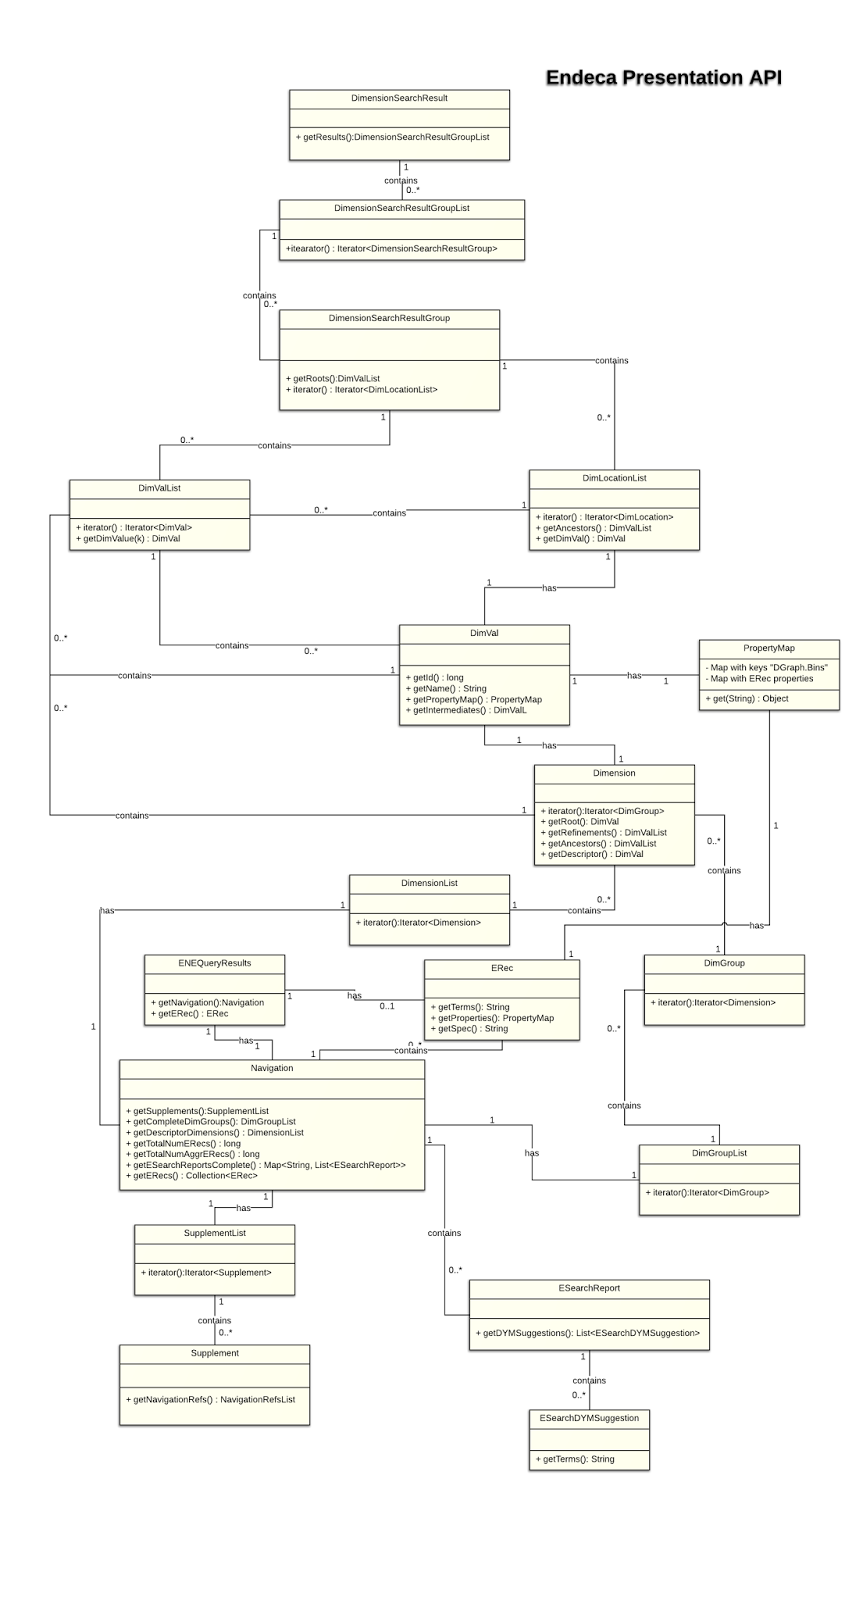 Endeca presentation api class diagram 10 99 following maven project is a endeca client poc project that i created to test endeca connection httpsbitbucketrpatnaiklsiendeca client poc ccuart Image collections